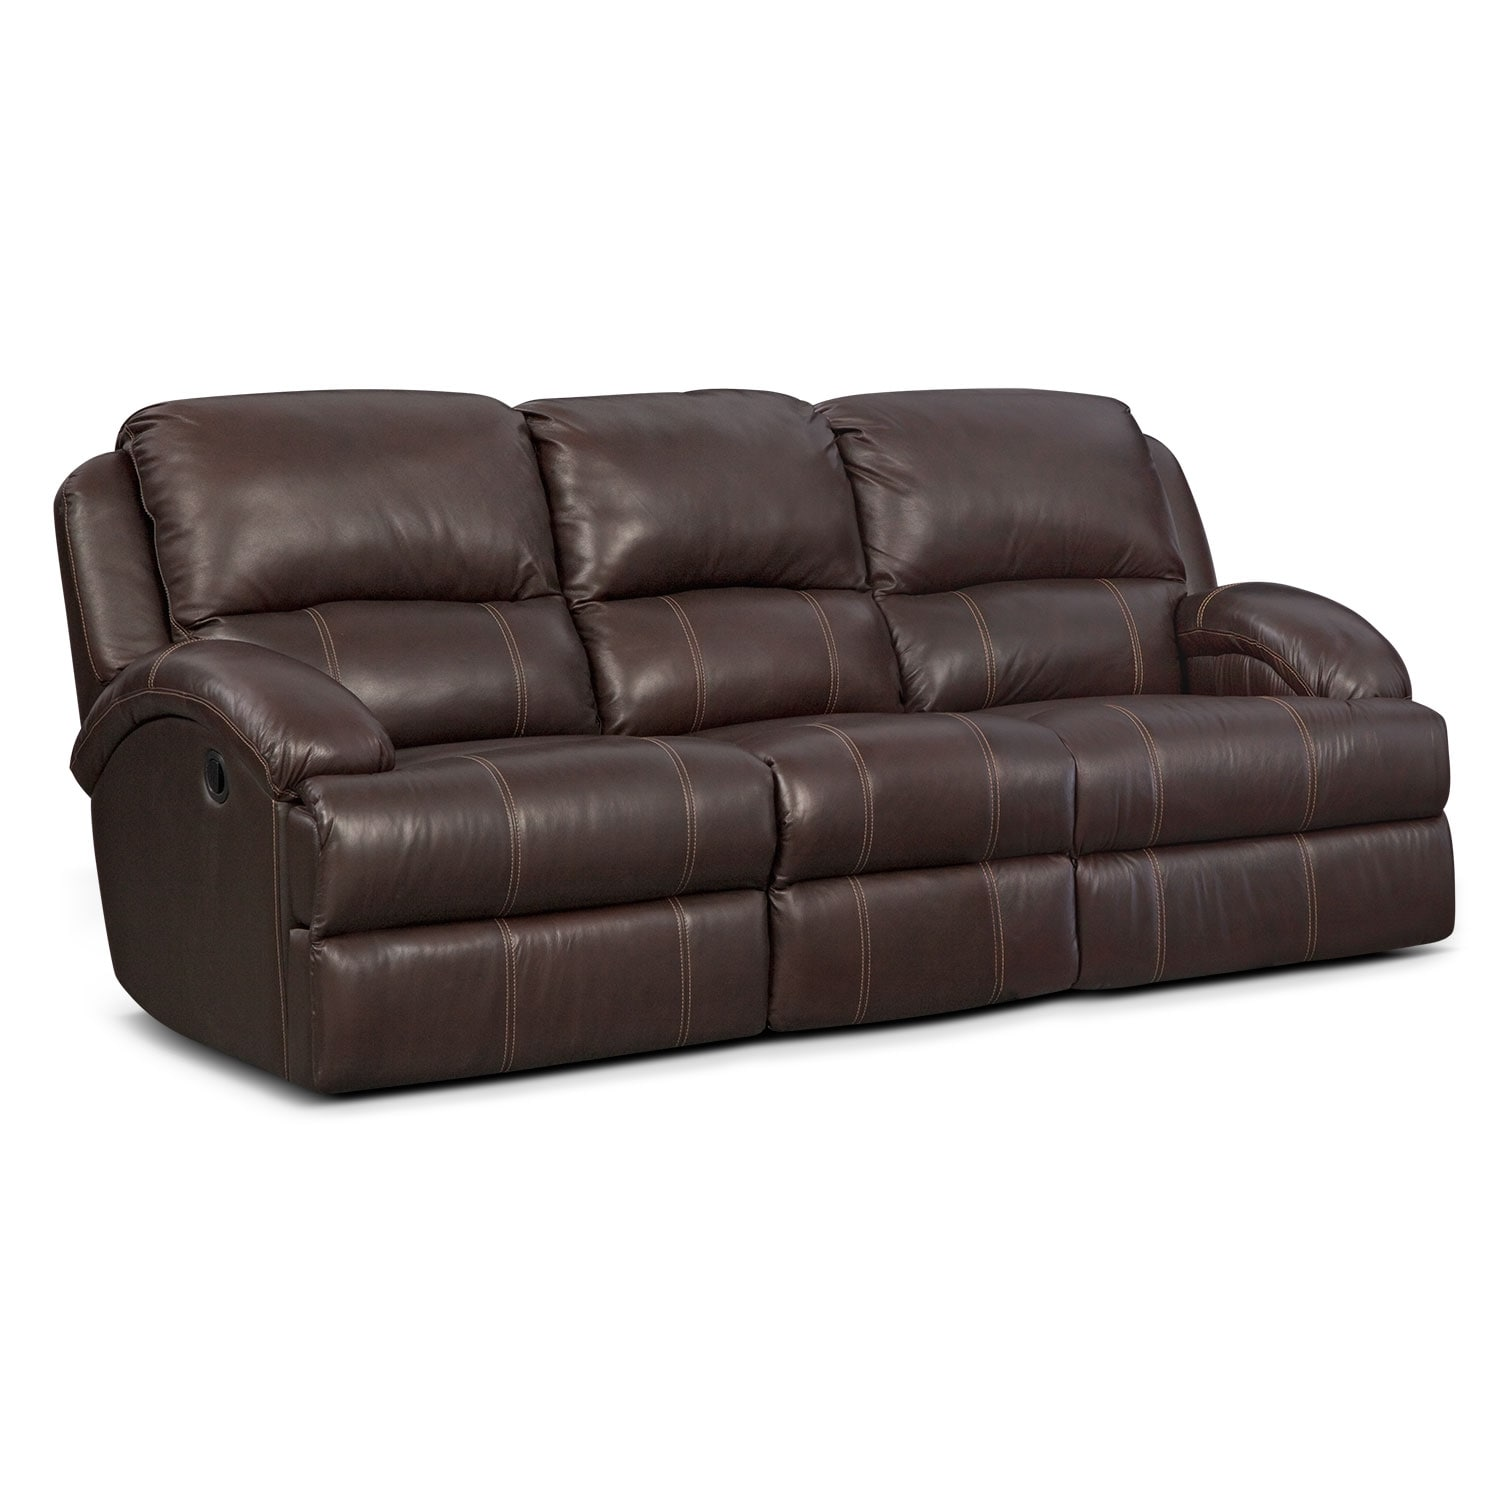 Nolan Dual Reclining Sofa - Chocolate